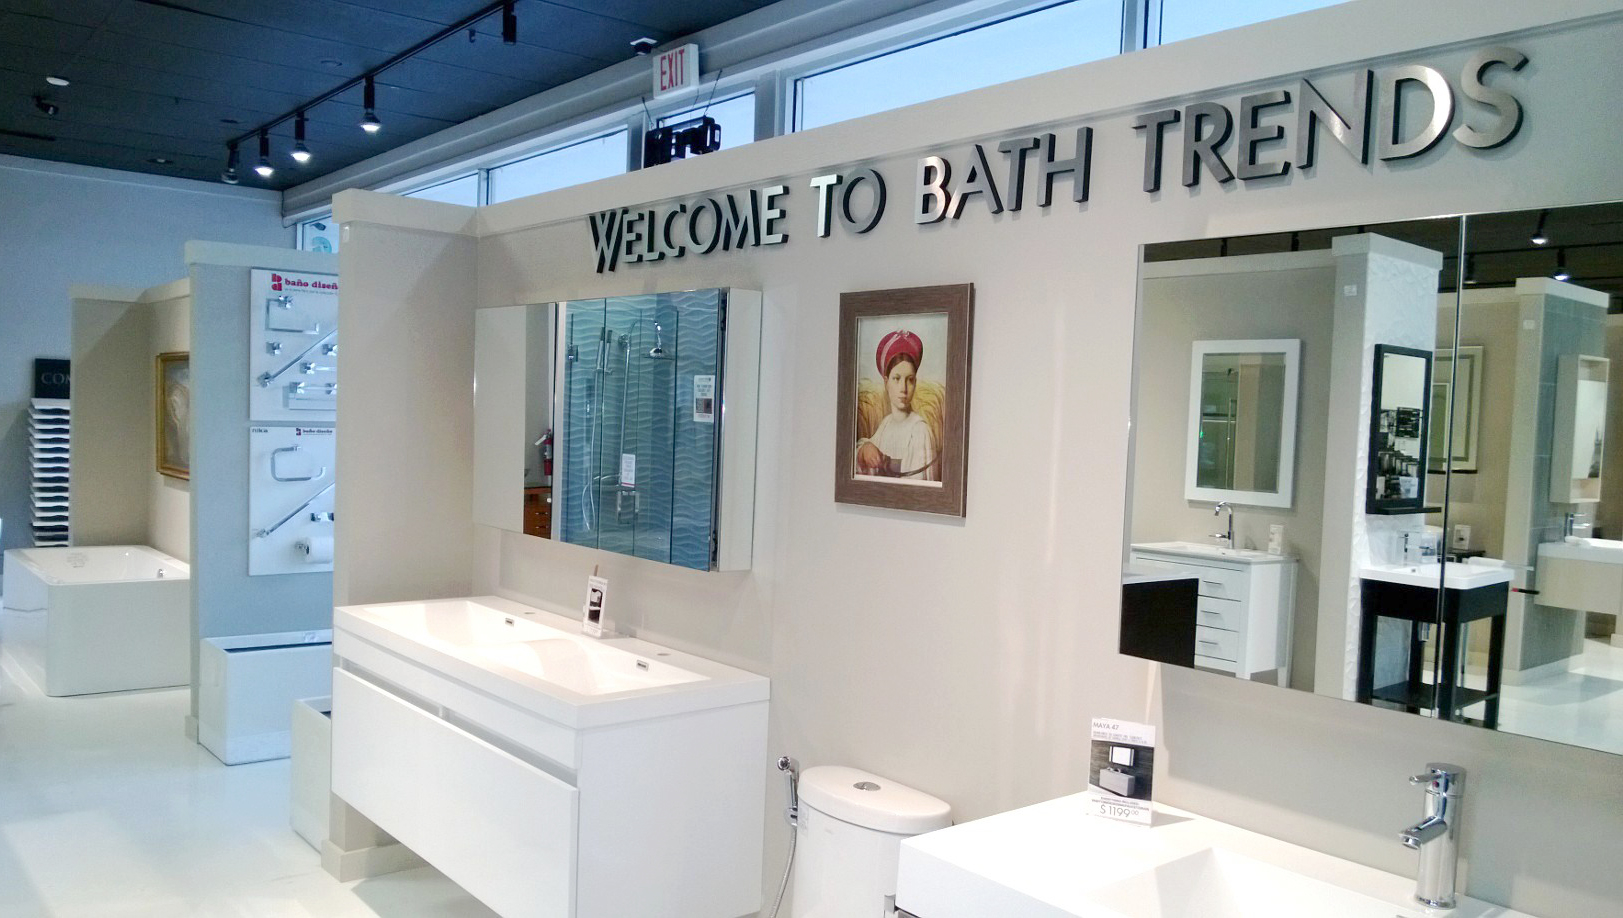 Bath Trends Coupons Near Me In Fort Lauderdale 8coupons